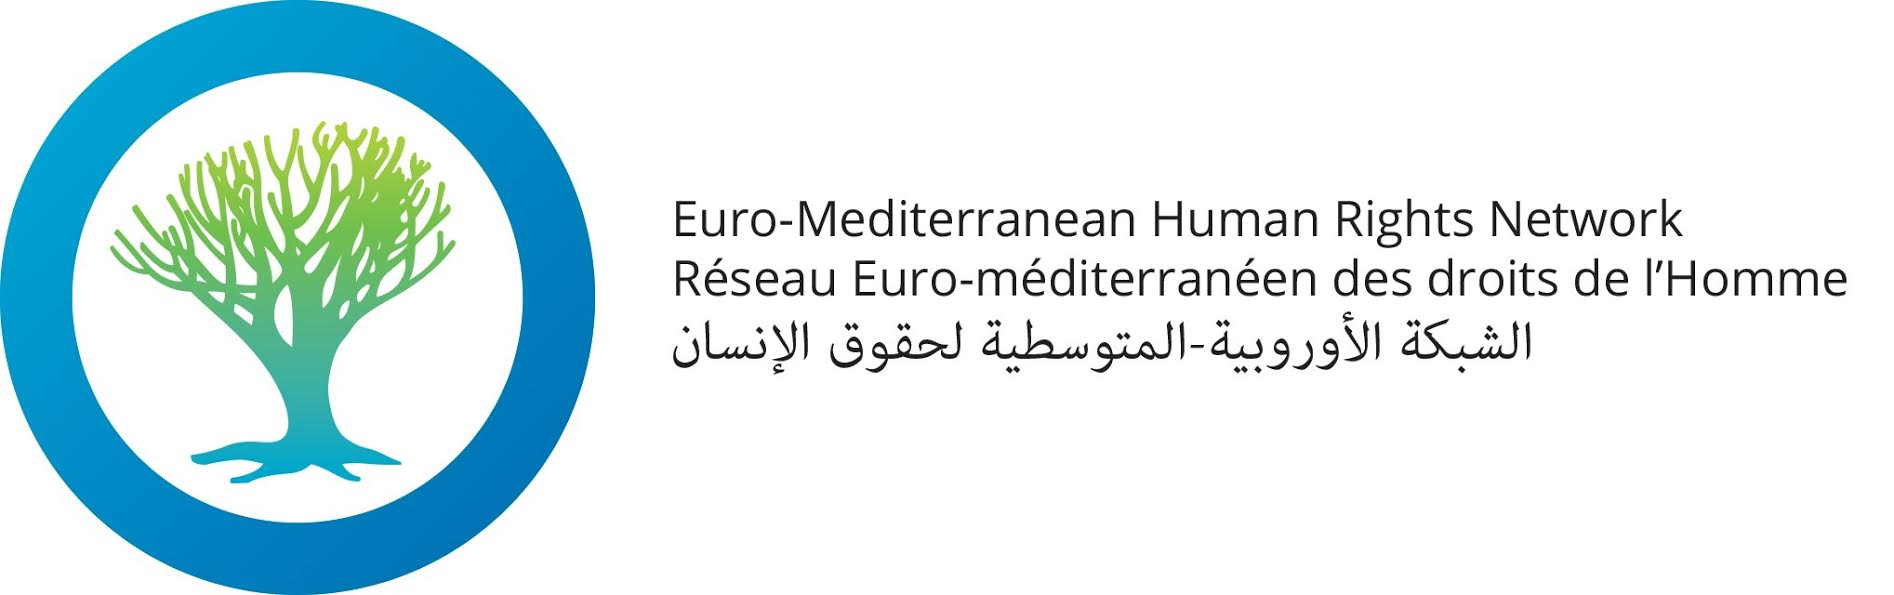 Euromed Rights